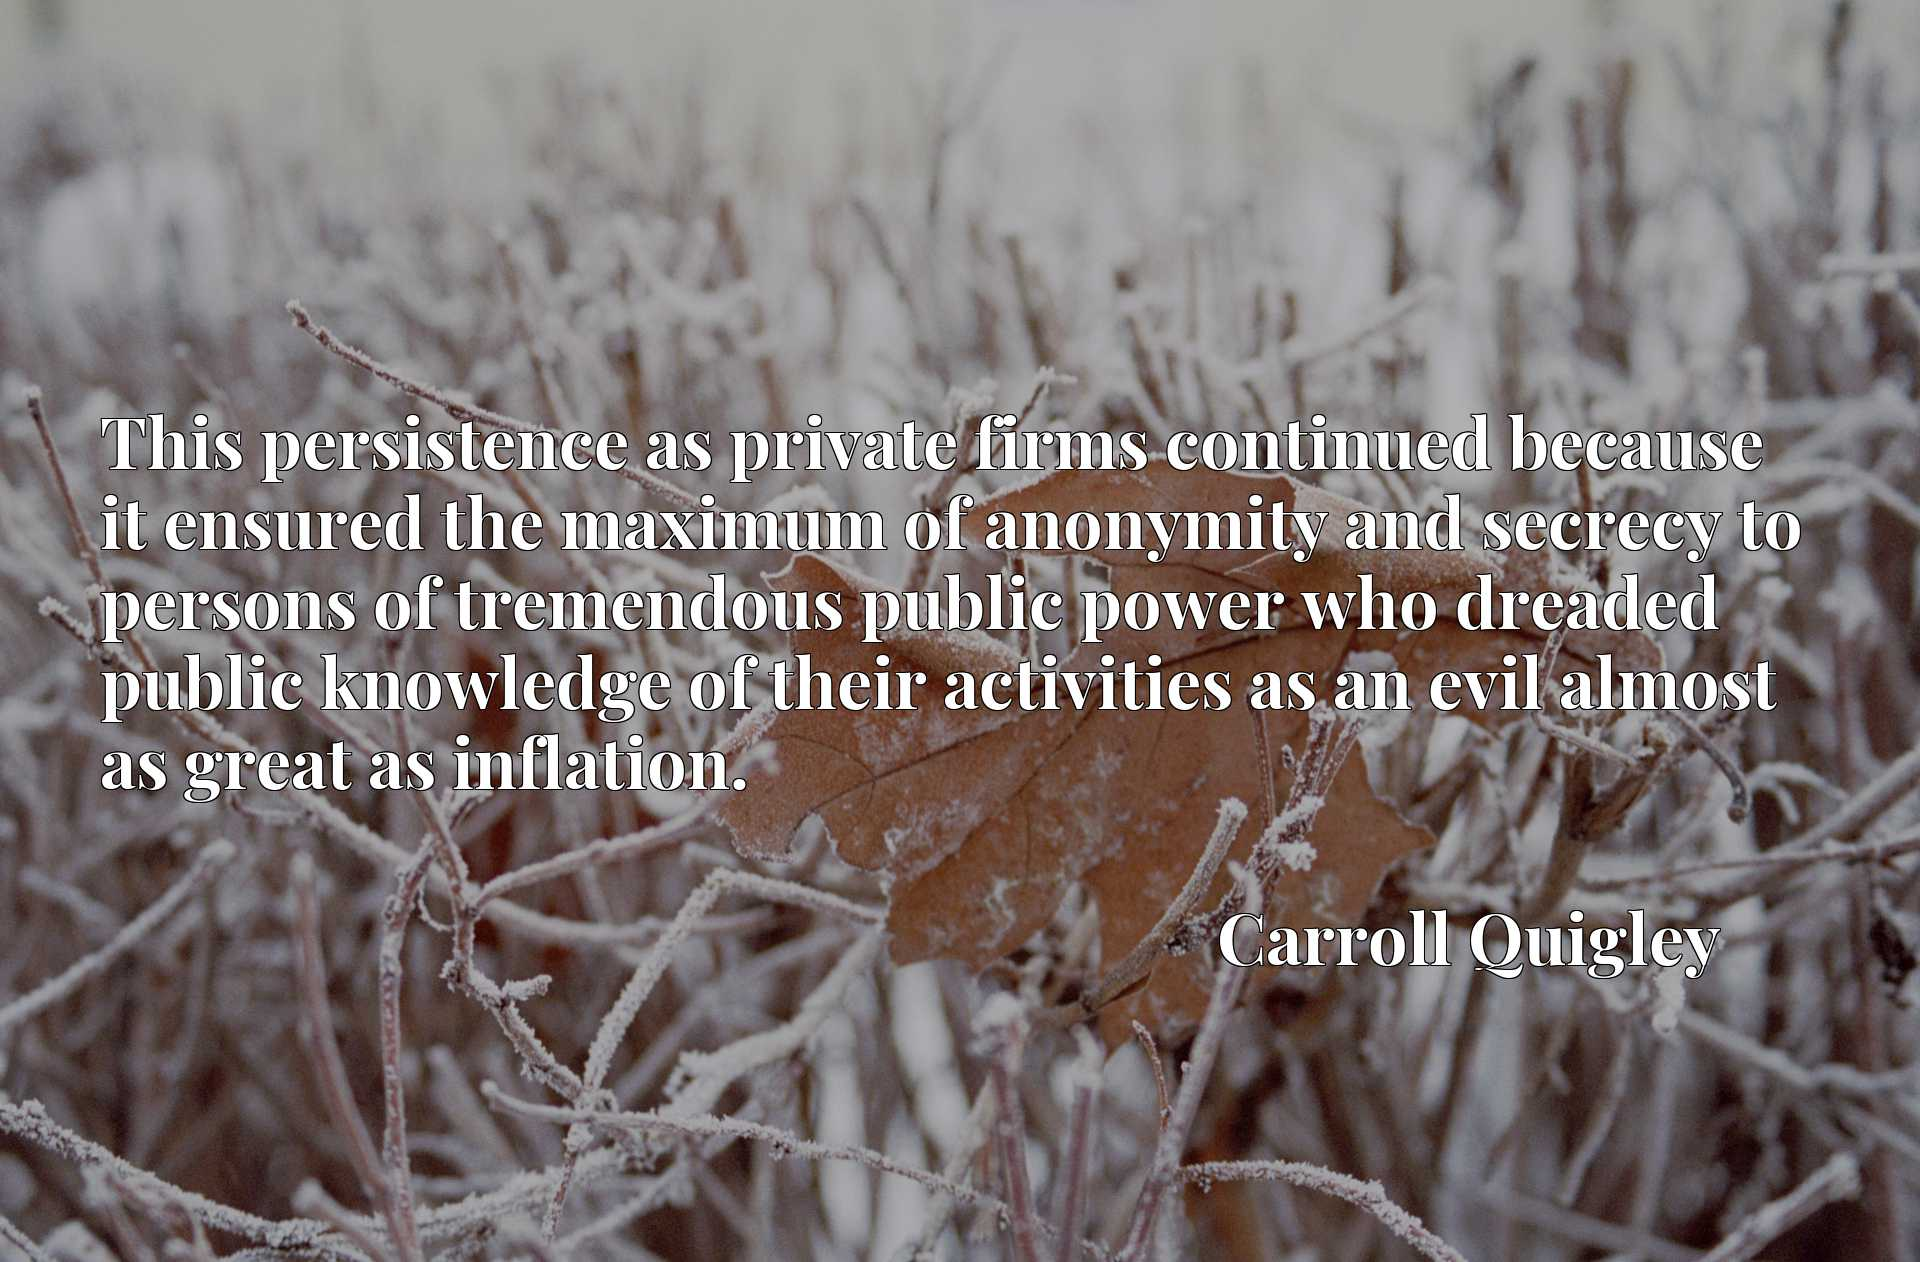 Quote Picture :This persistence as private firms continued because it ensured the maximum of anonymity and secrecy to persons of tremendous public power who dreaded public knowledge of their activities as an evil almost as great as inflation.